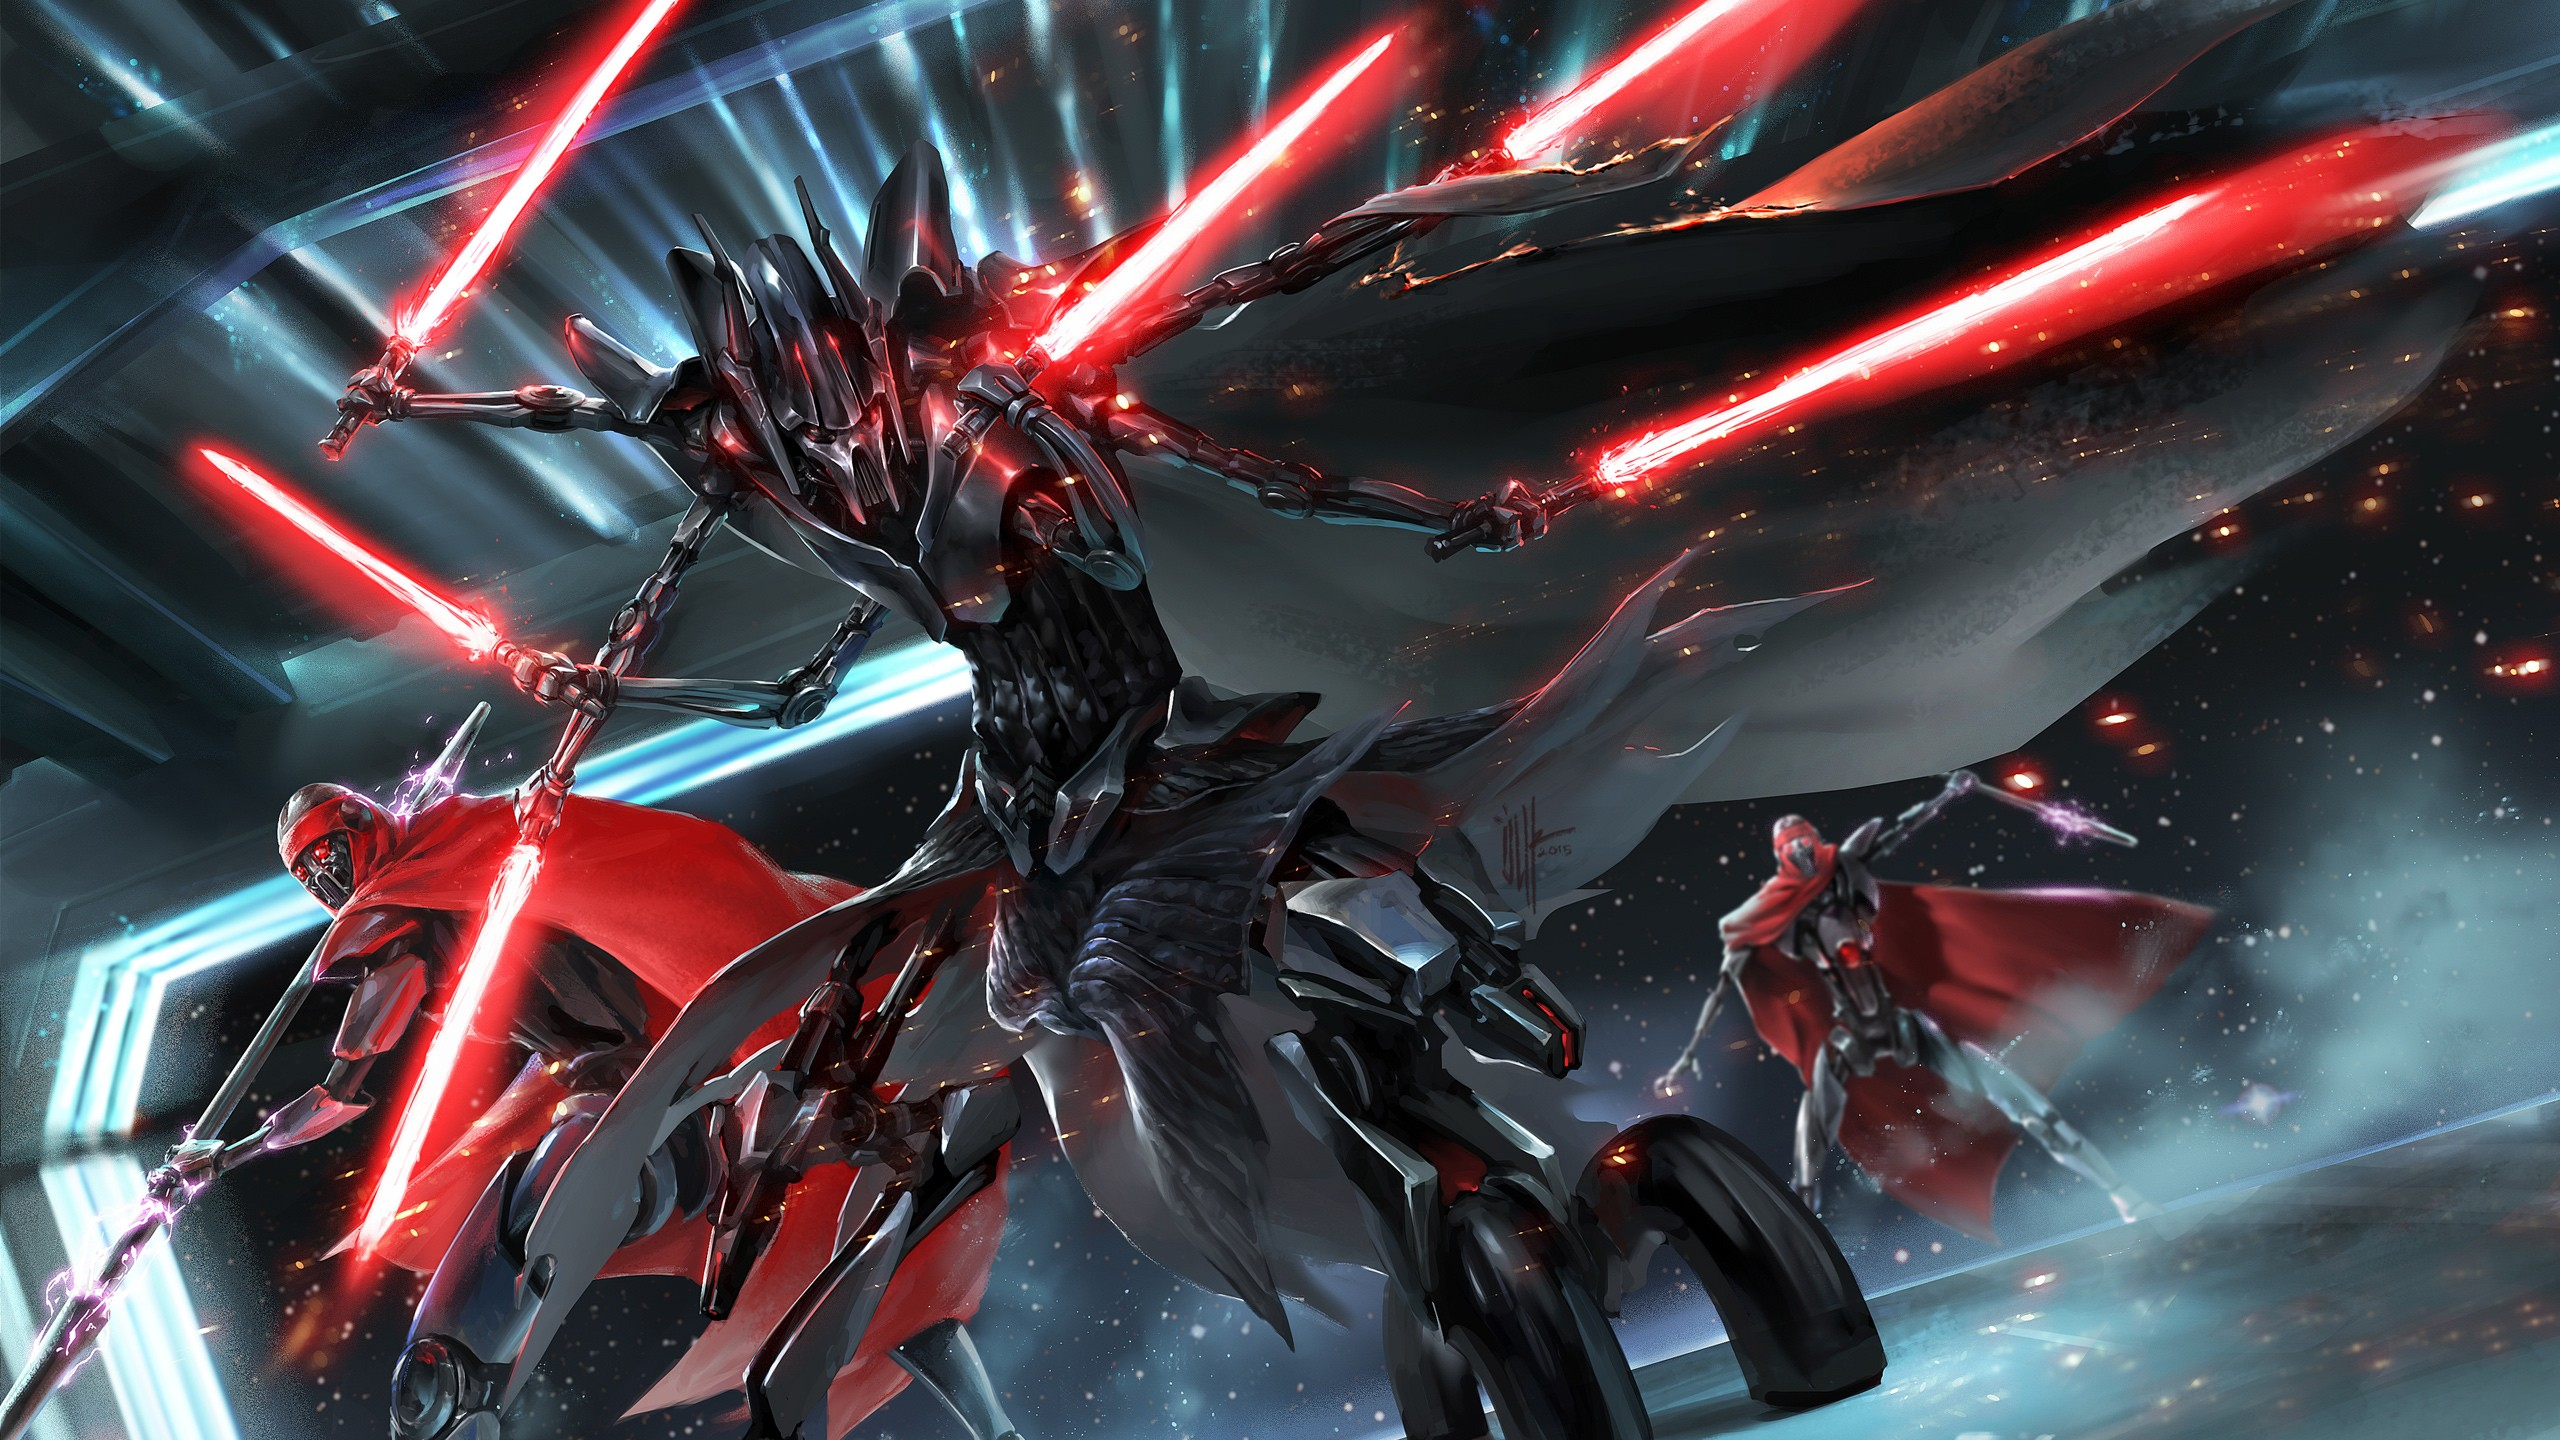 3d Wallpaper For Ipad General Grievous Star Wars Wallpapers Hd Wallpapers Id